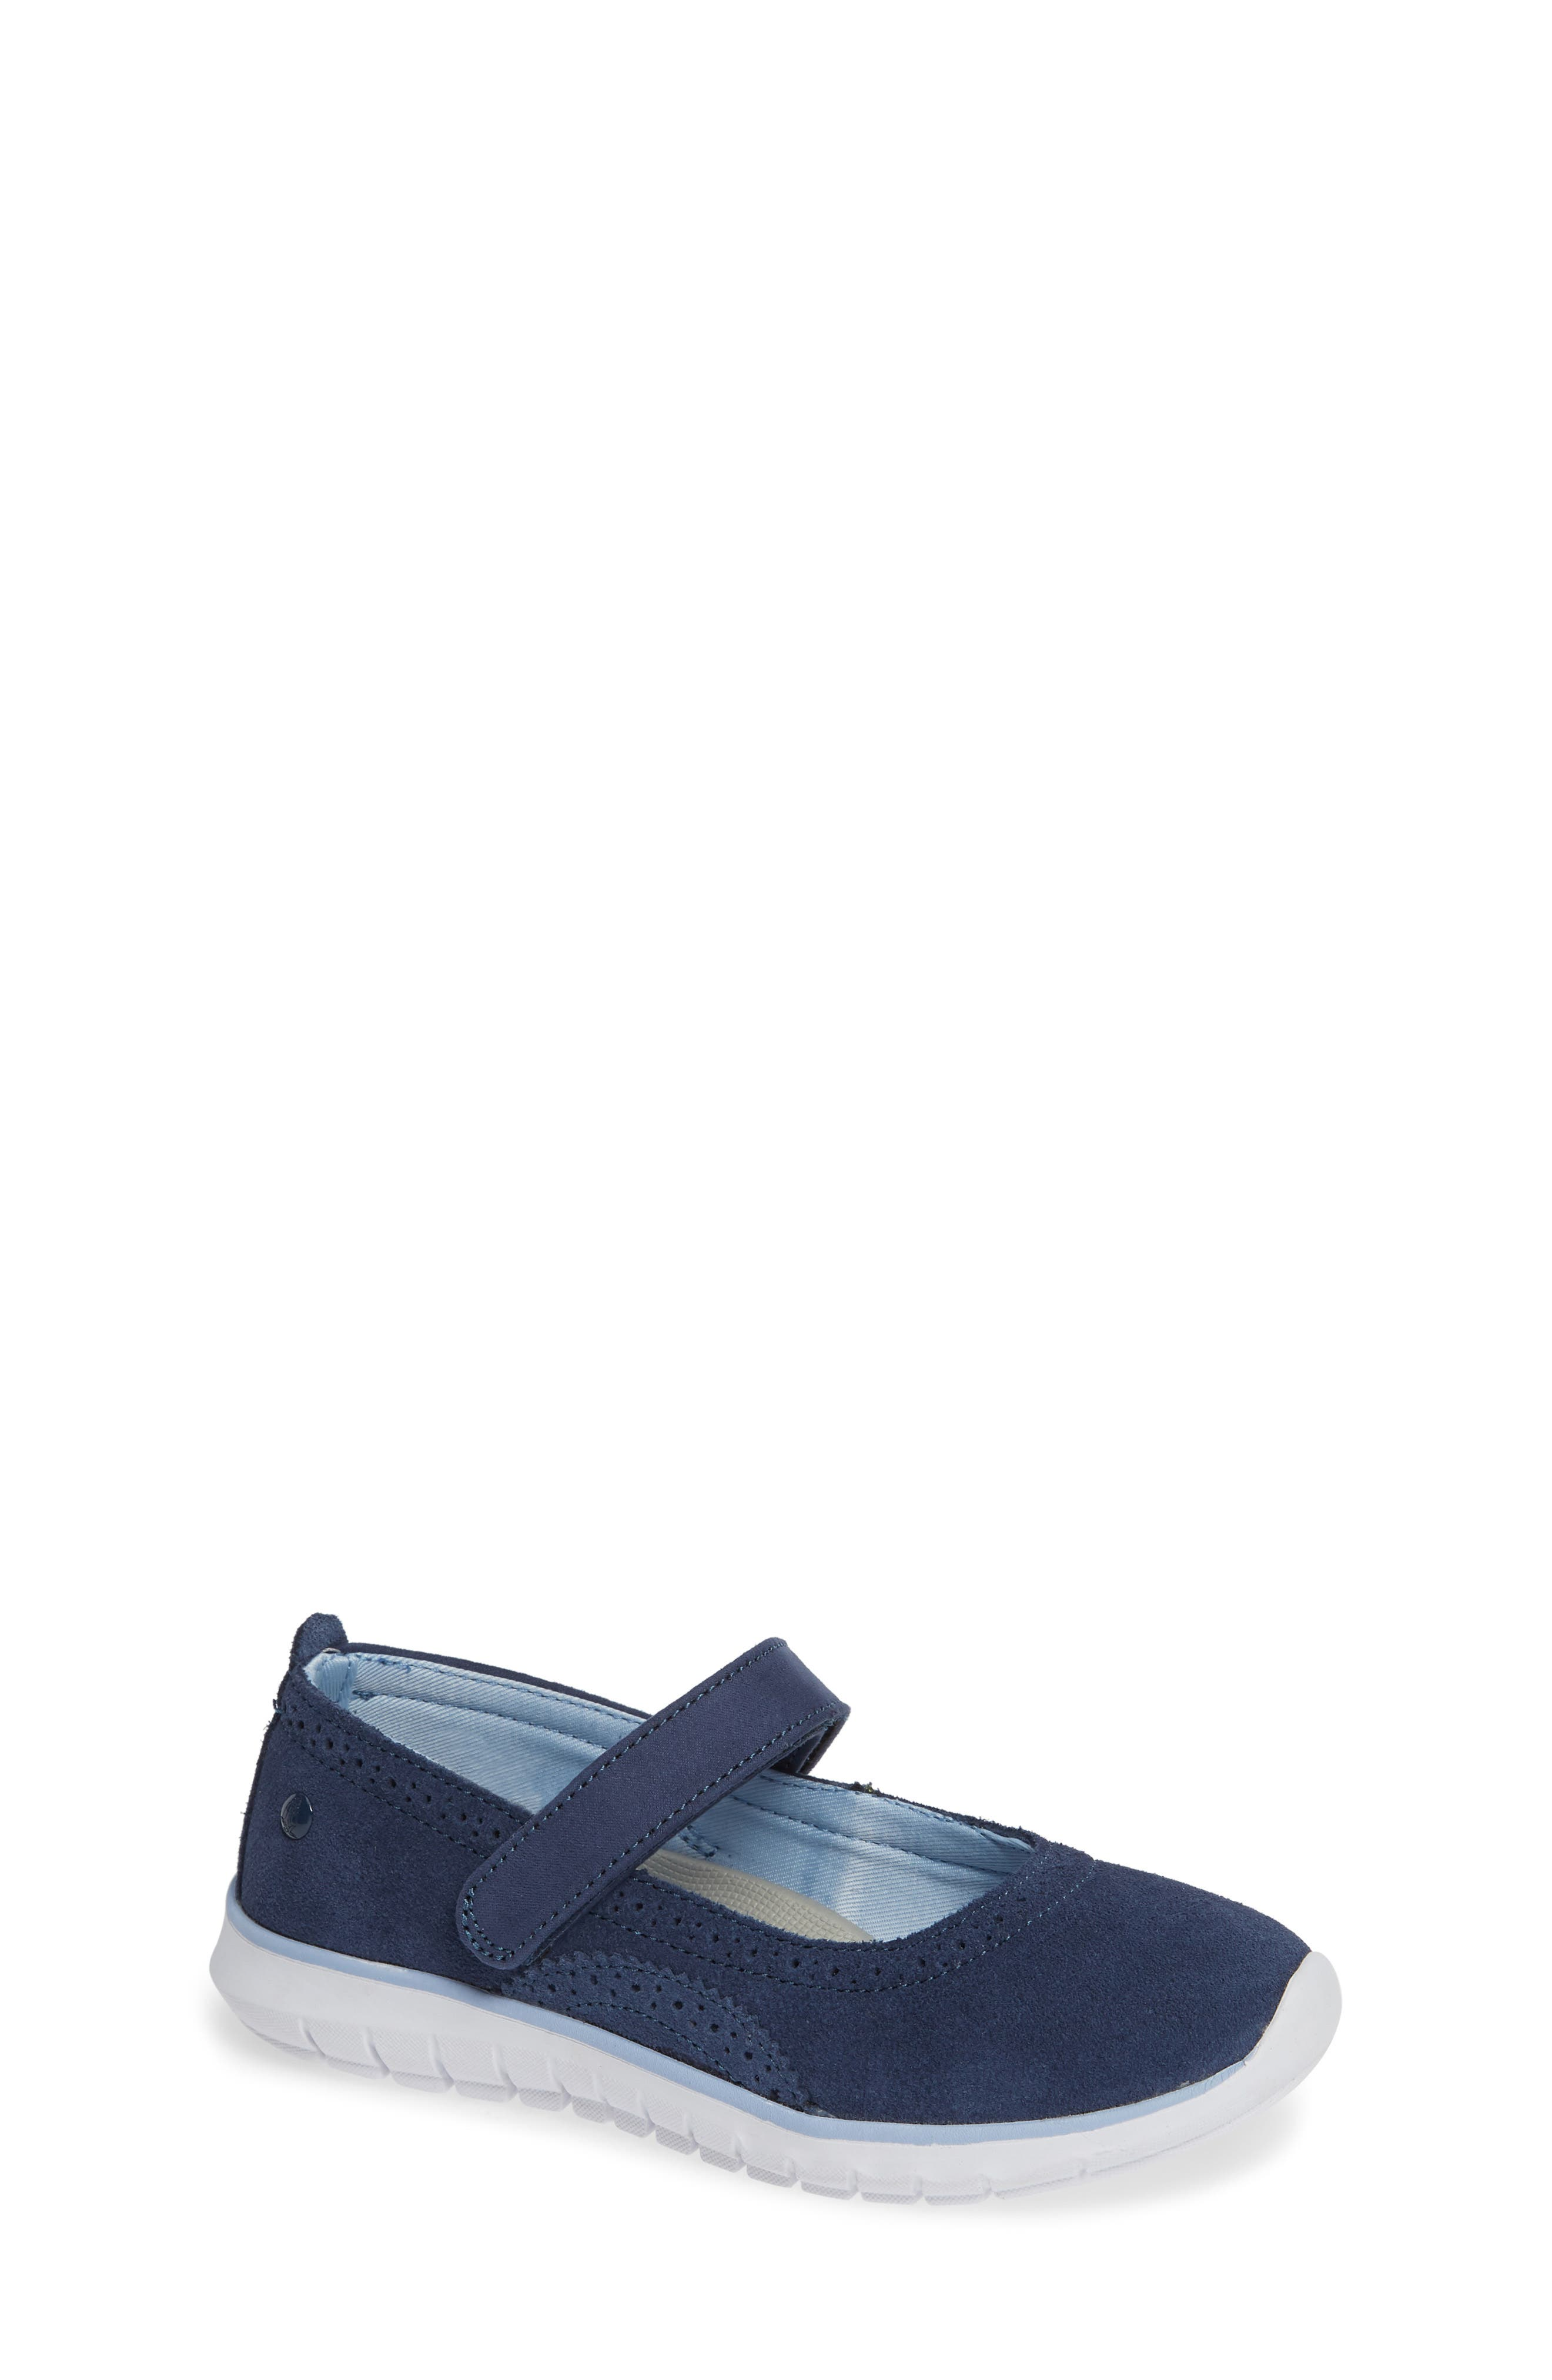 HUSH PUPPIES<SUP>®</SUP>, Flote Tricia Mary Jane Flat, Main thumbnail 1, color, NAVY